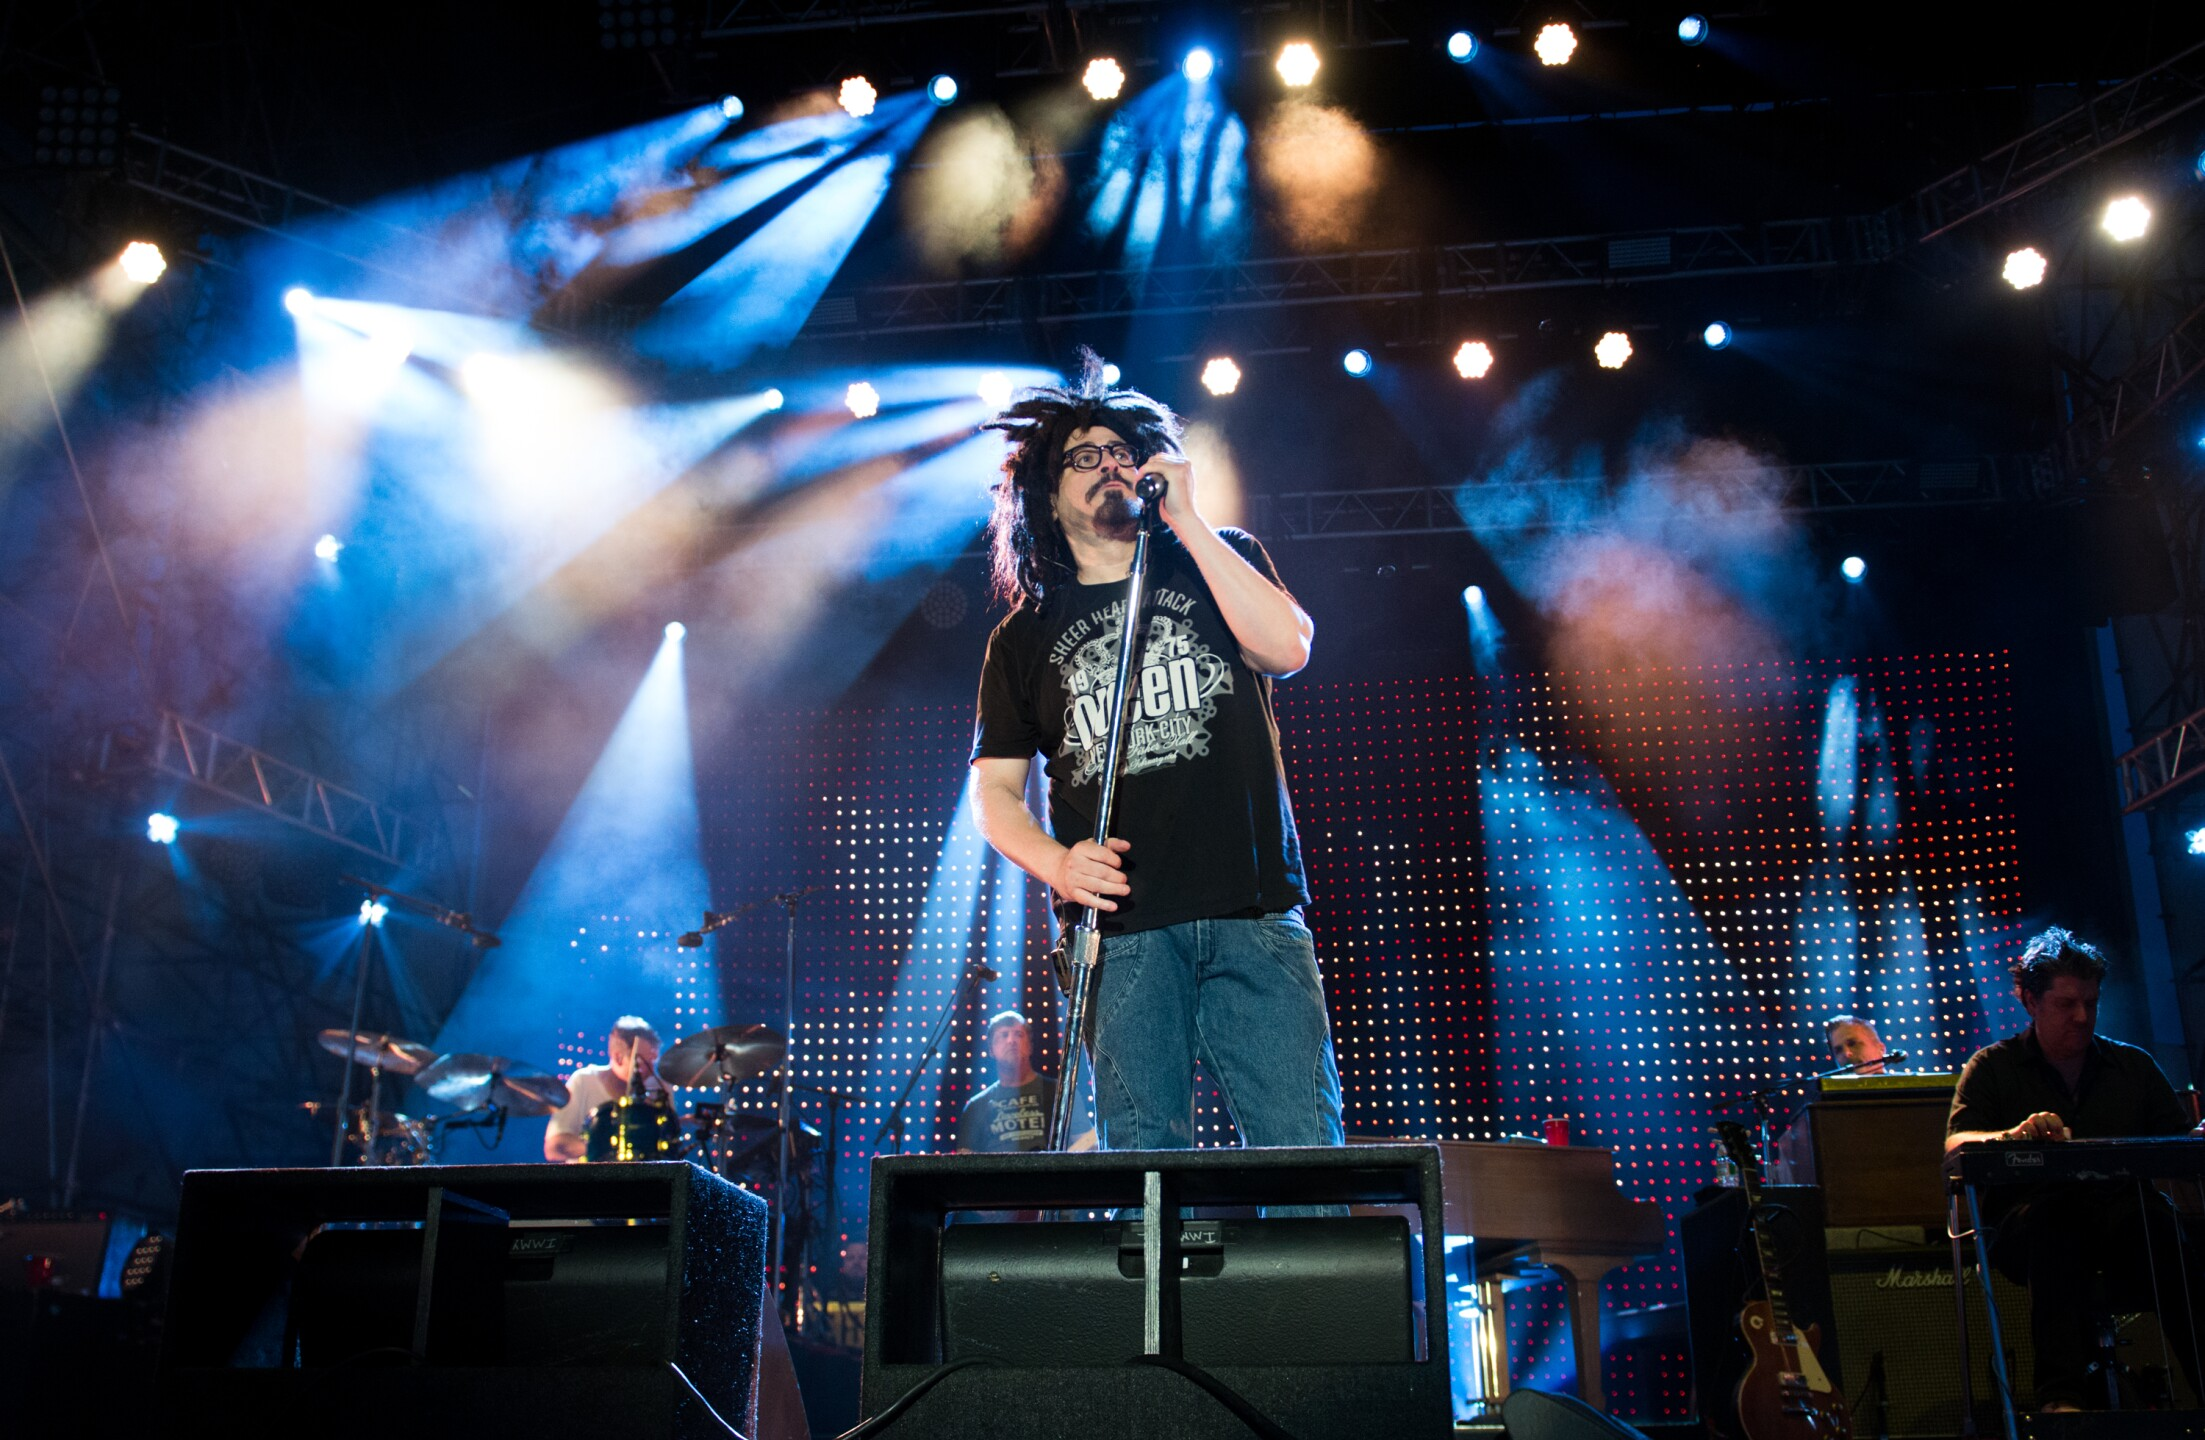 Counting Crows will join Willie Nelson on his Outlaw Tour at Summerfest 2019!